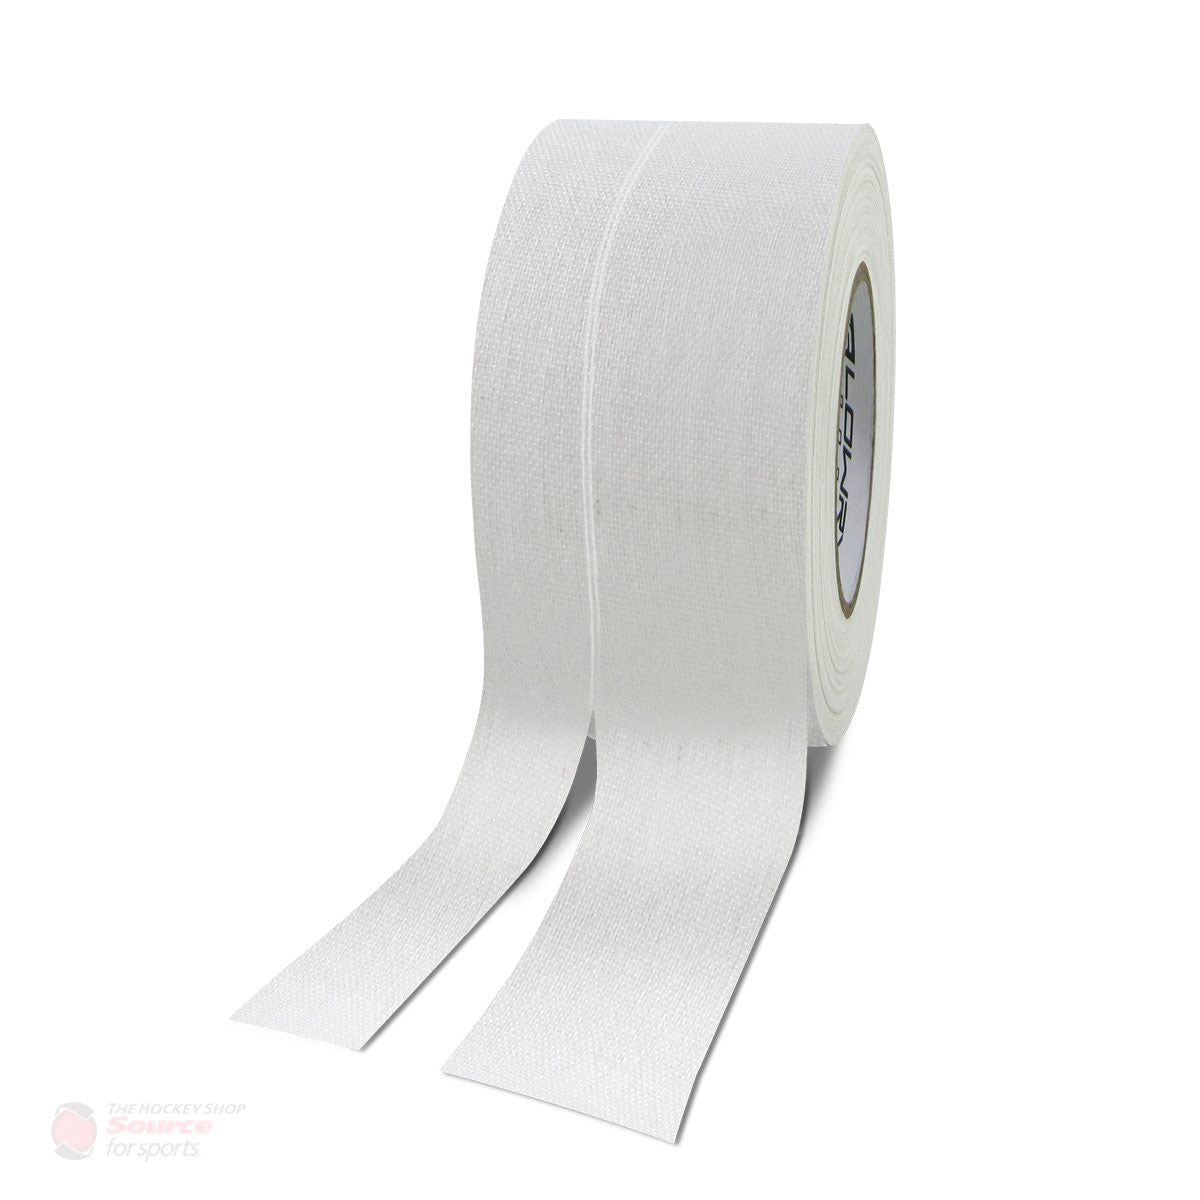 Lowry Sports Pro-Grade White Hockey Stick Tape - Split Cut